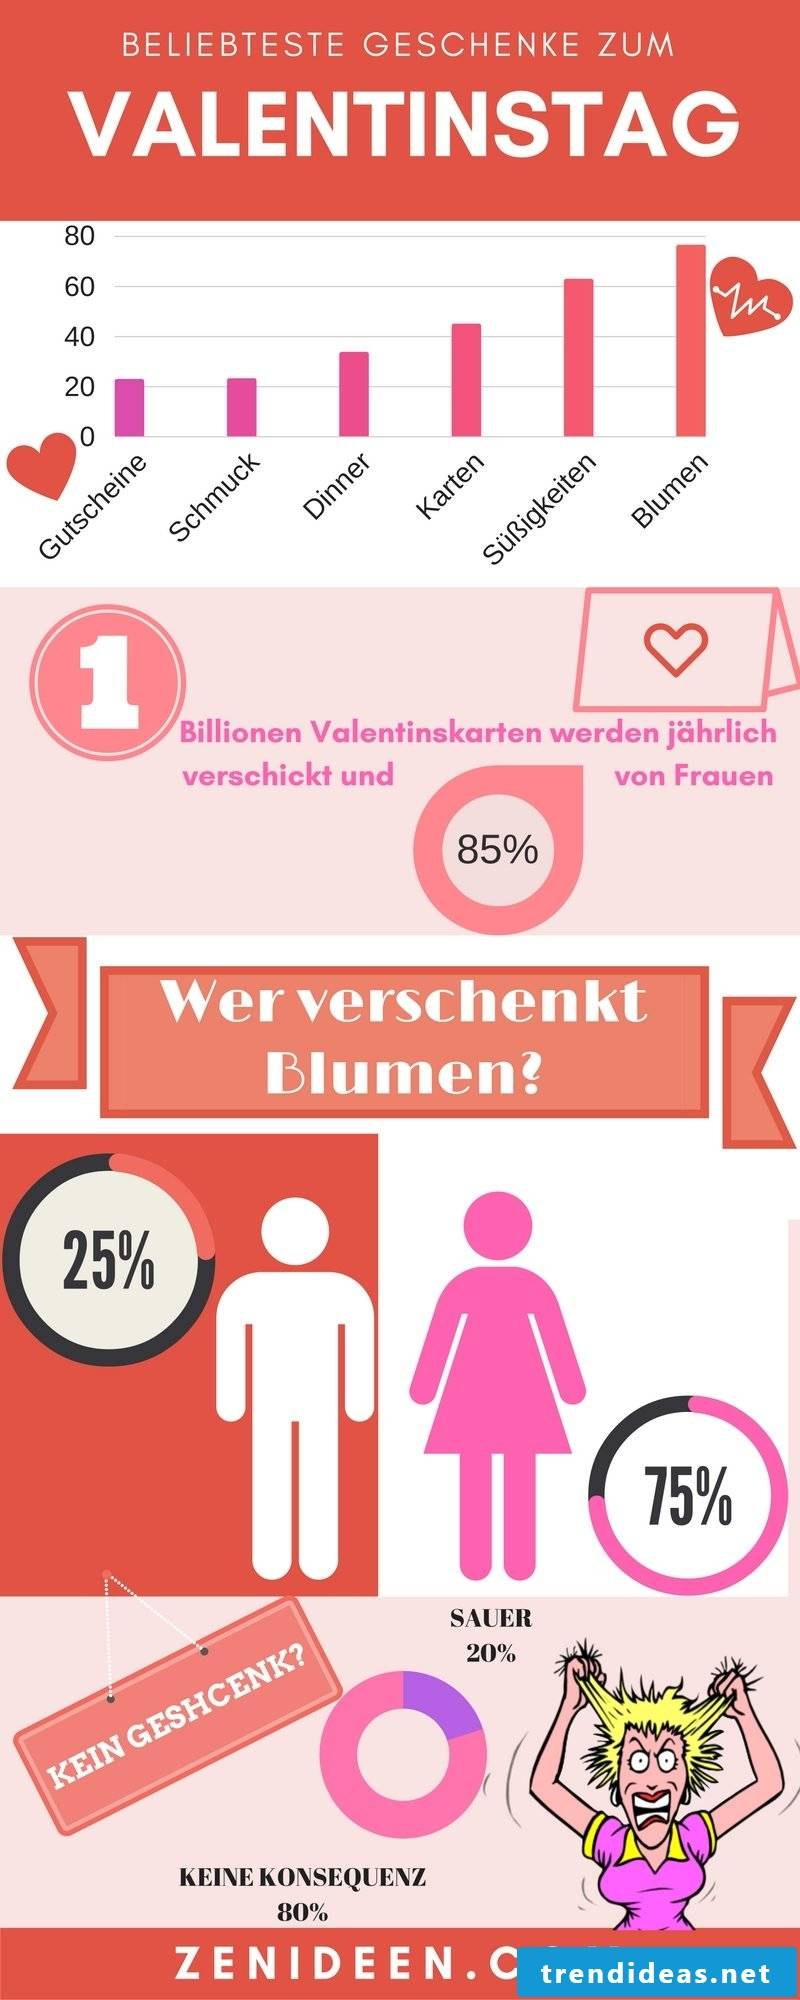 Interesting facts about Valentine's Day - most popular gifts